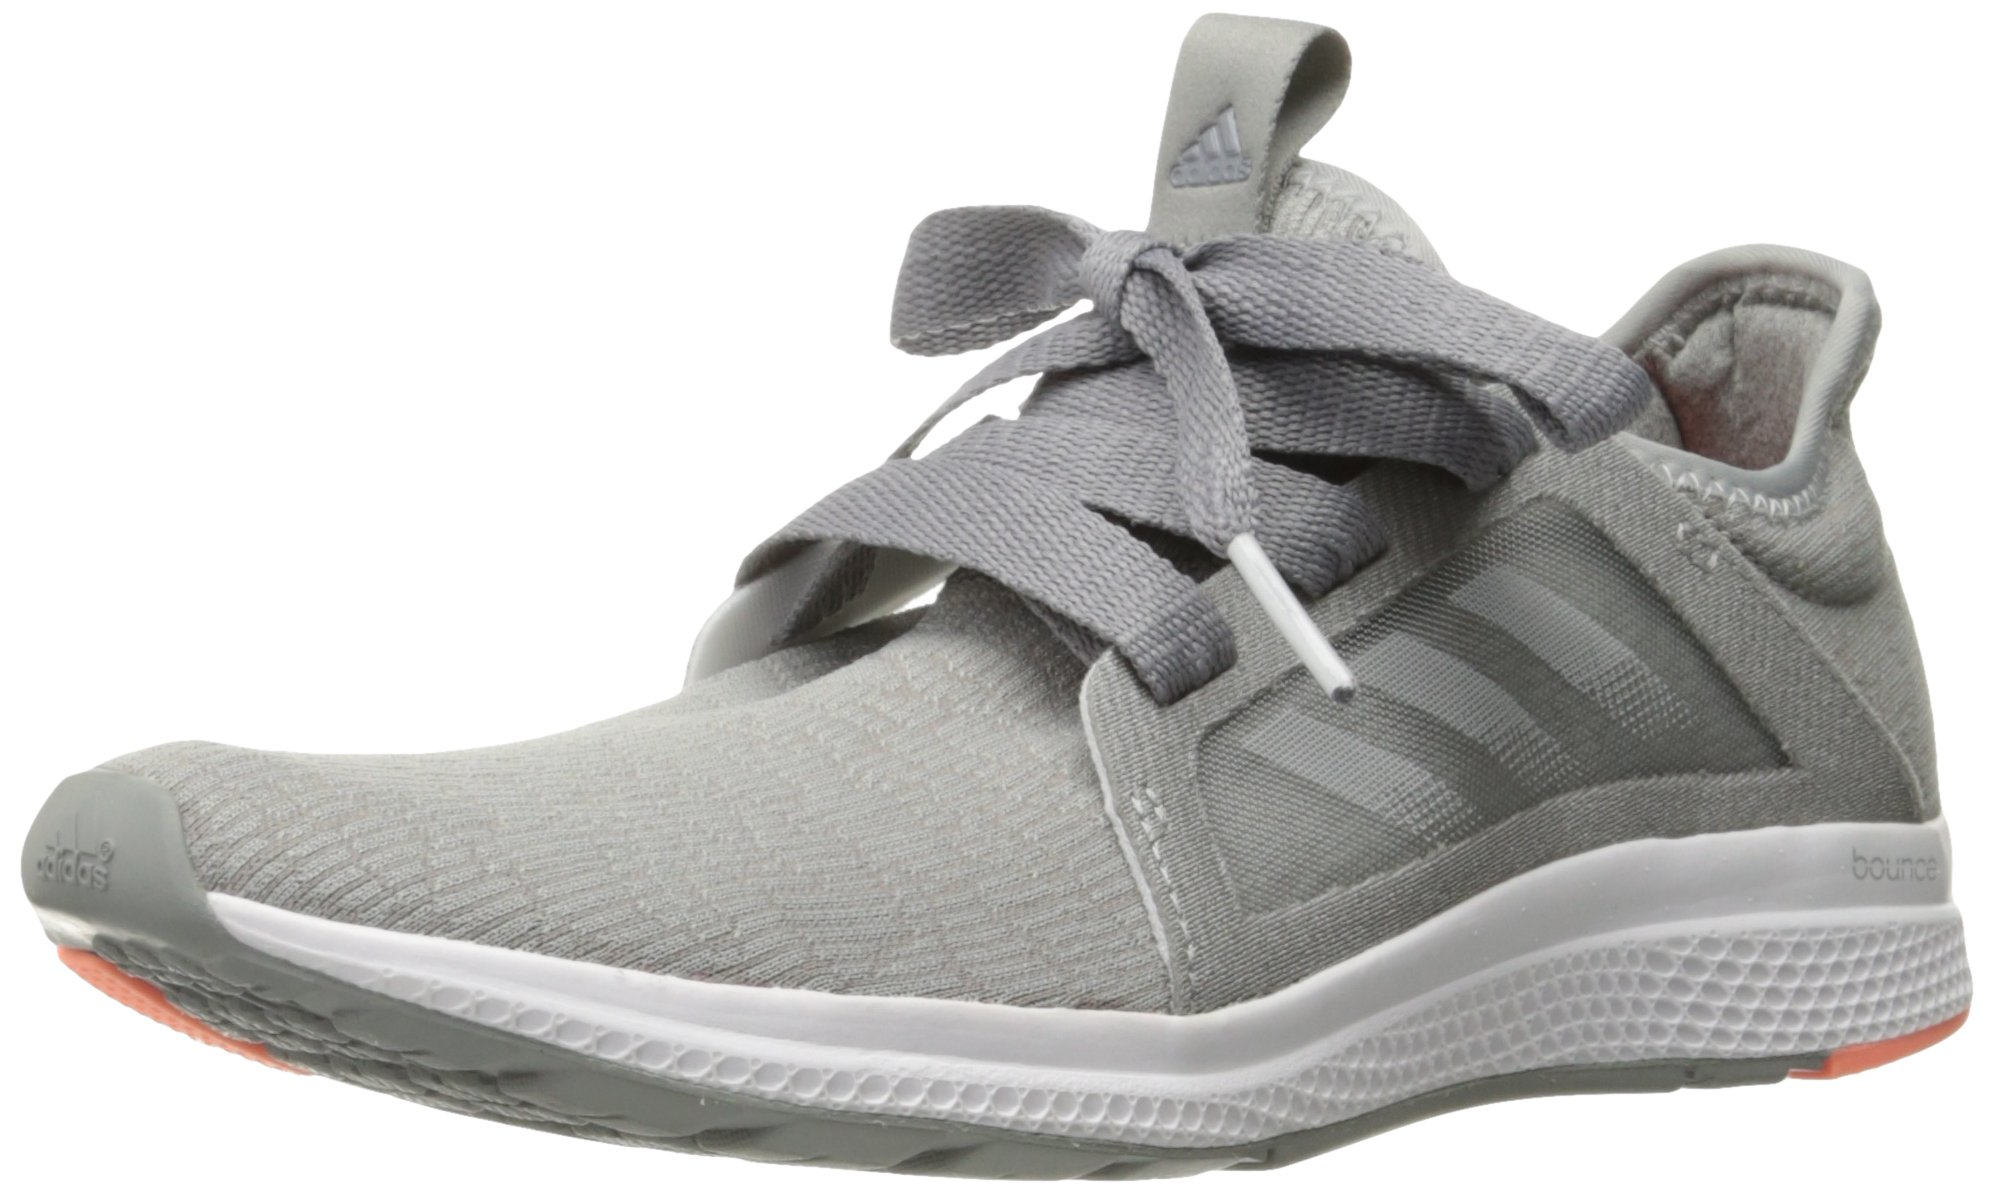 new style 25352 0a9b3 Galleon - Adidas Womens Edge Lux W Running Shoe, Grey-Crystal White-Sun  Glow, 7.5 M US